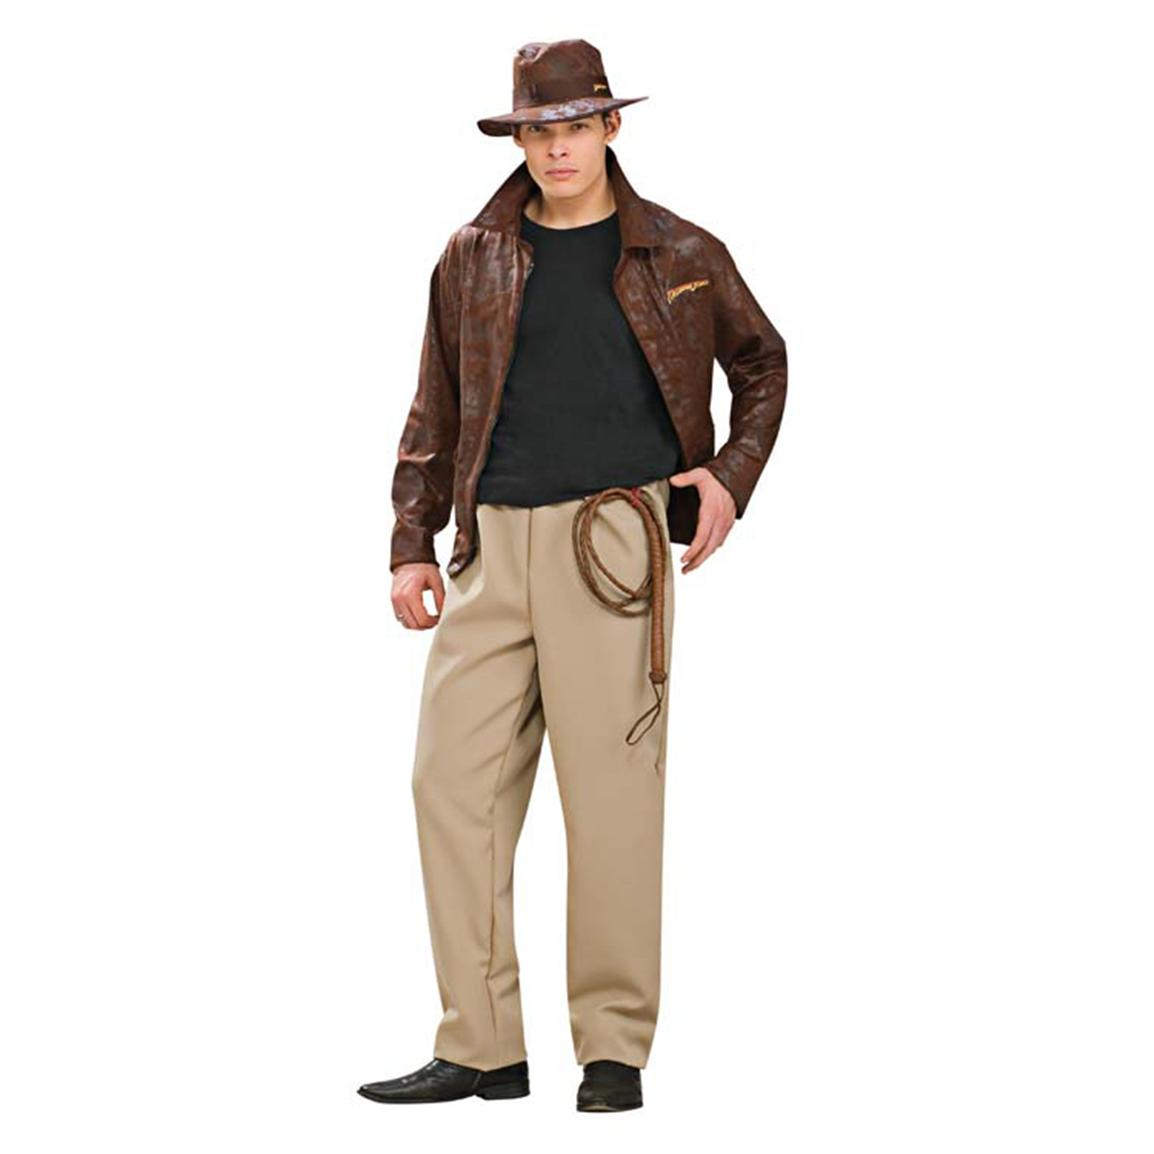 Morris Costumes Indiana Jones Deluxe Costume